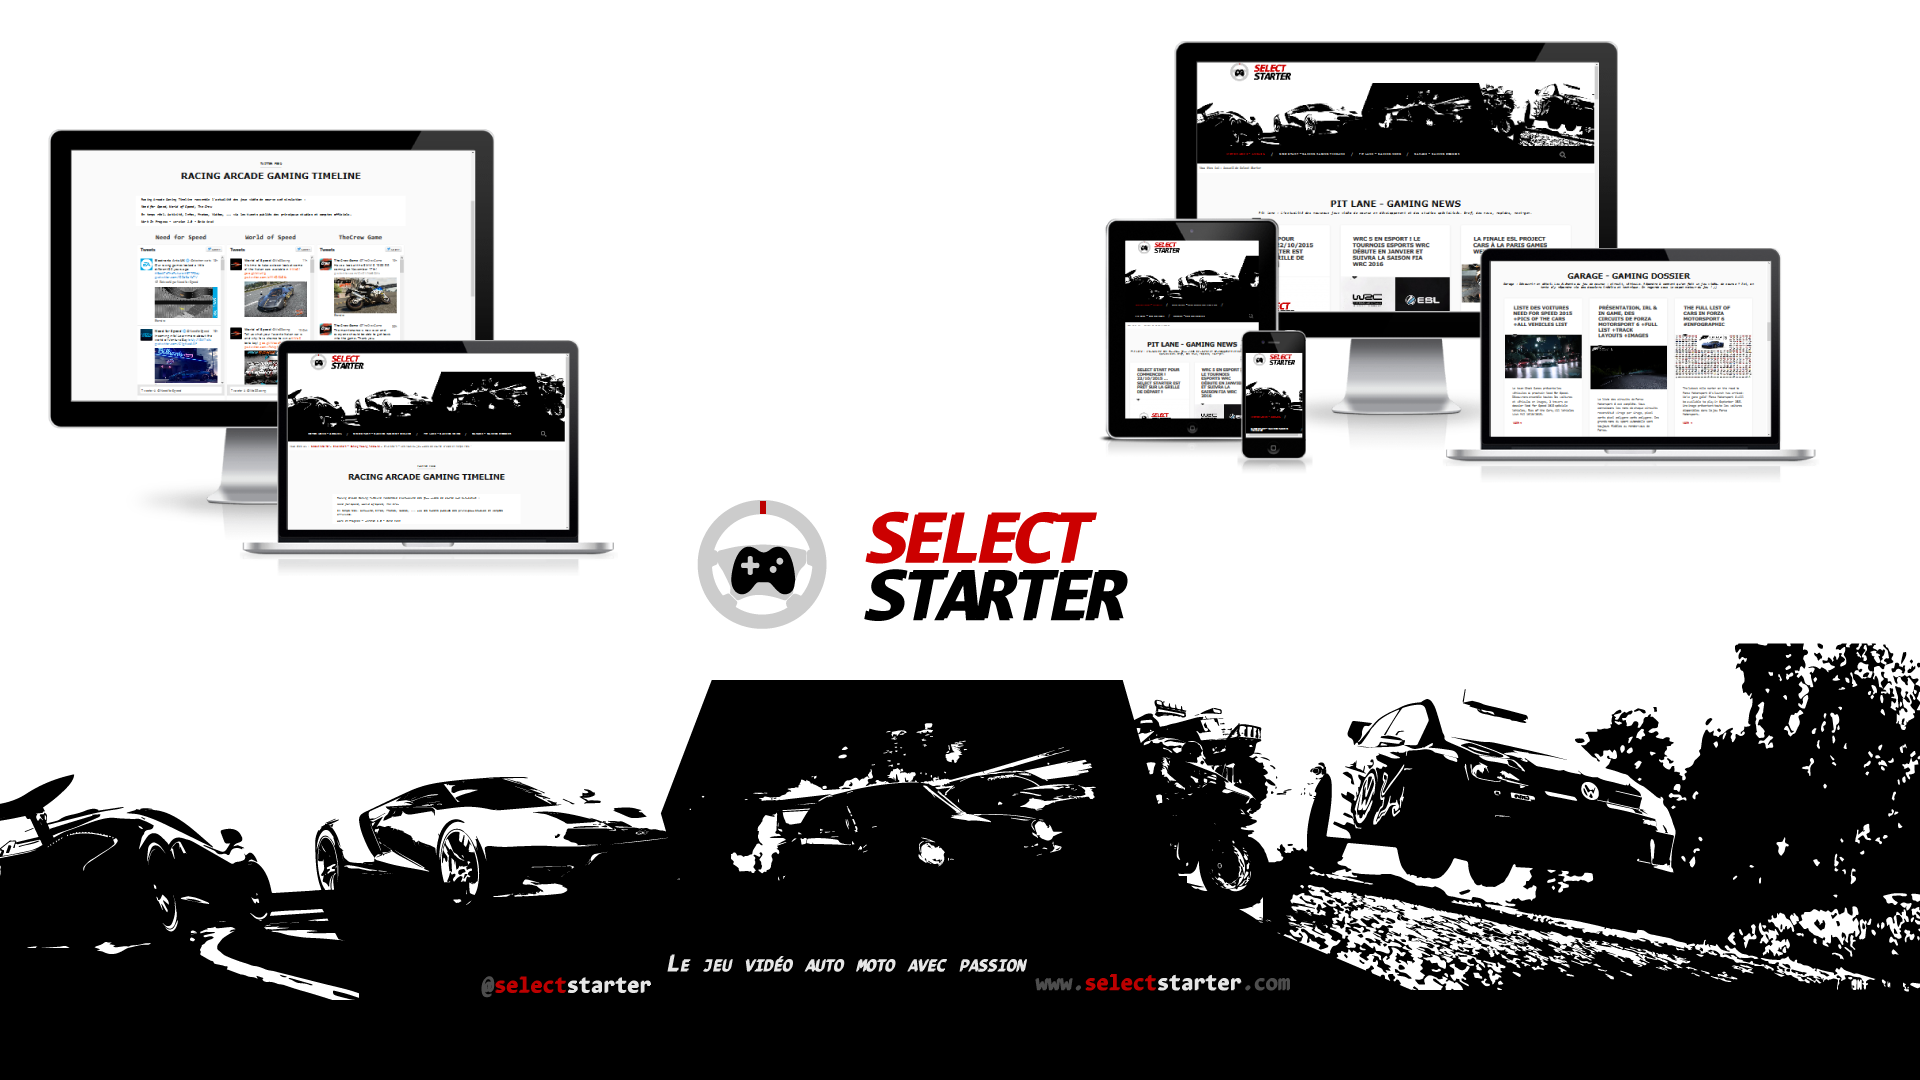 Site Select Starter - artwork - 2015 - by ELJ